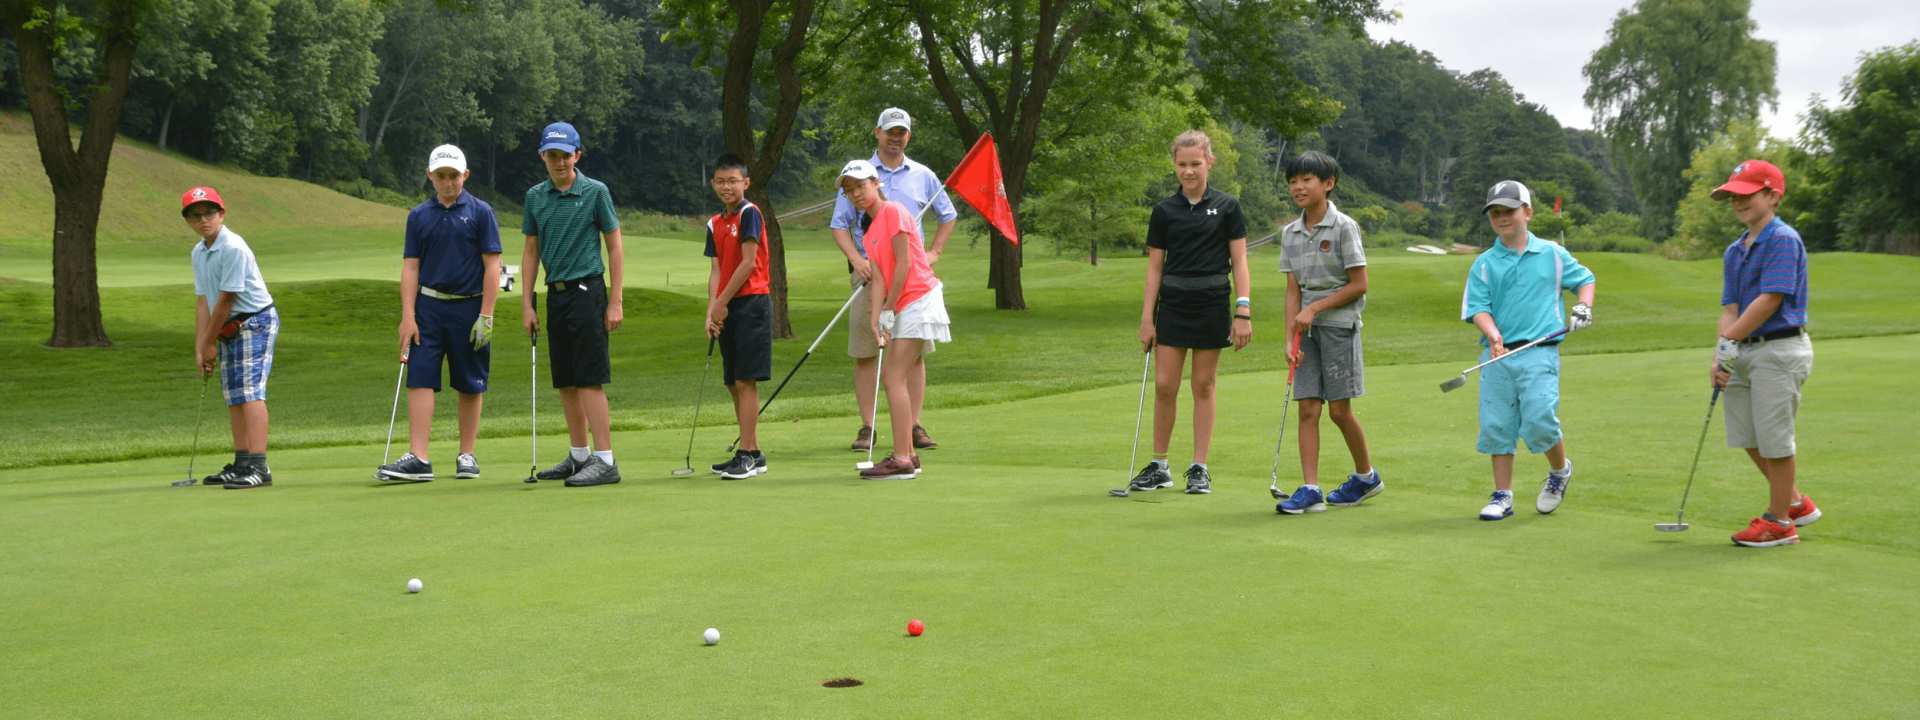 Kids Playing Golf At The Thornhill Club